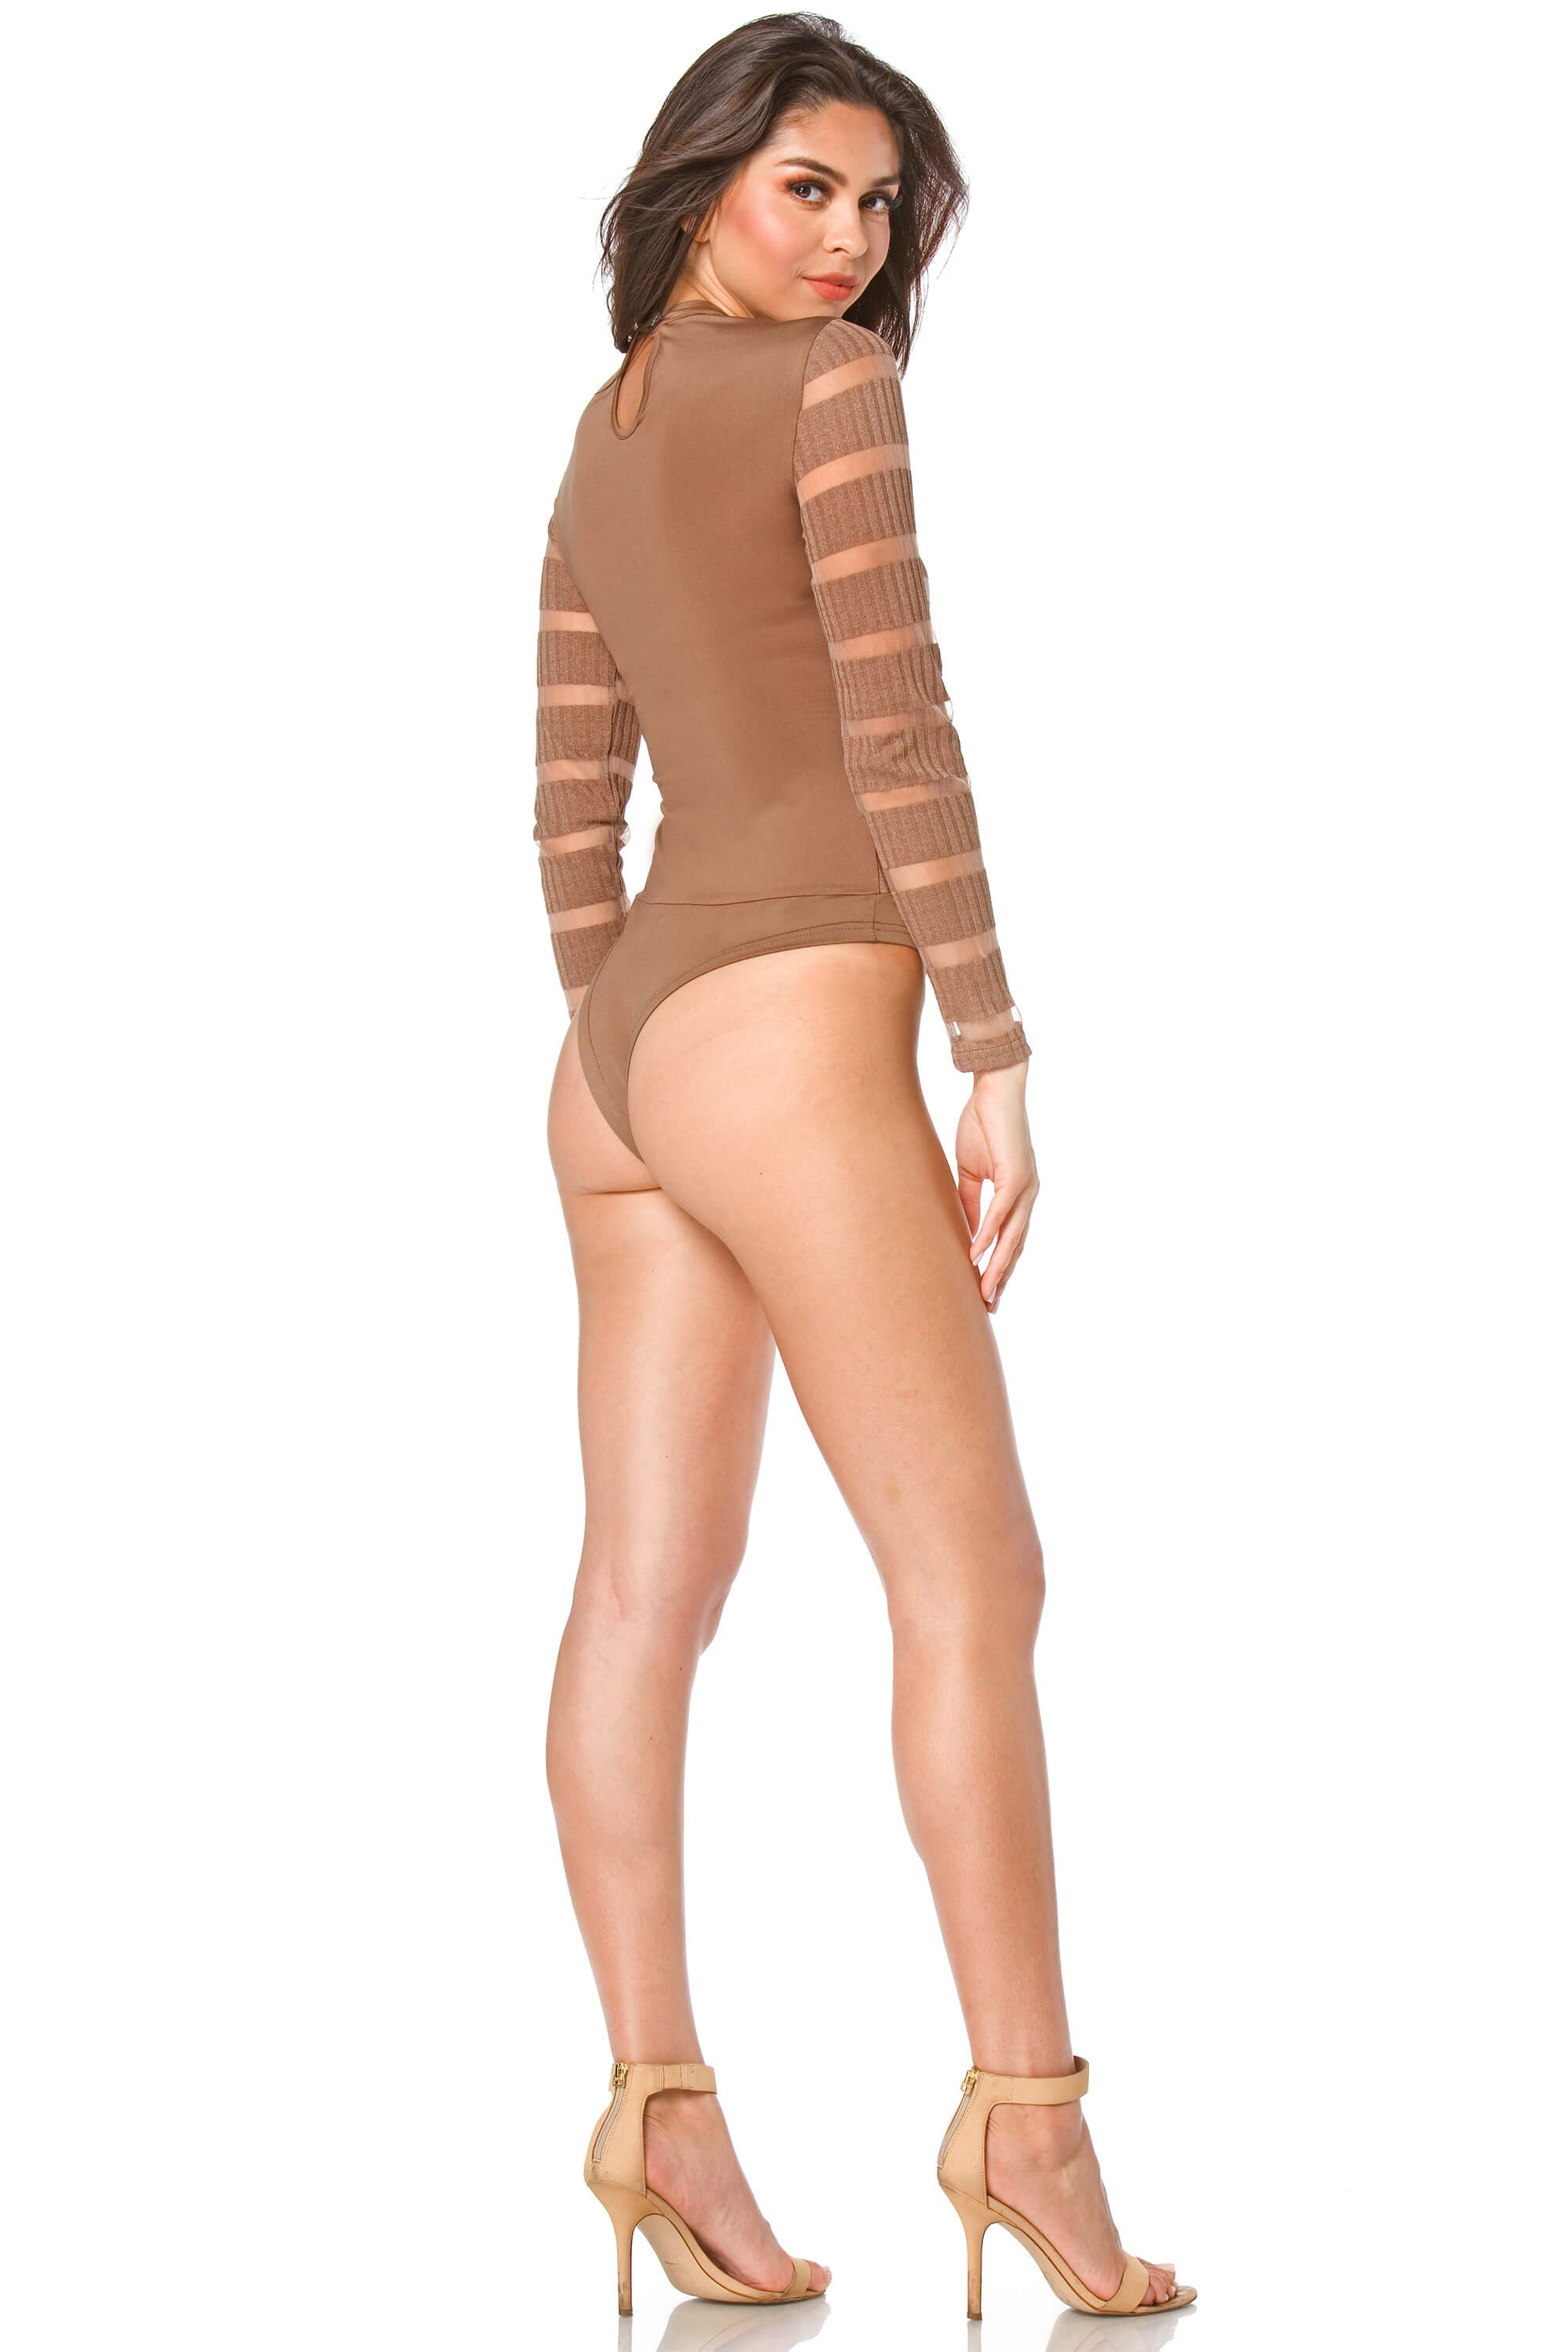 Tara Sheer Mesh Line Design Bodysuit for Women